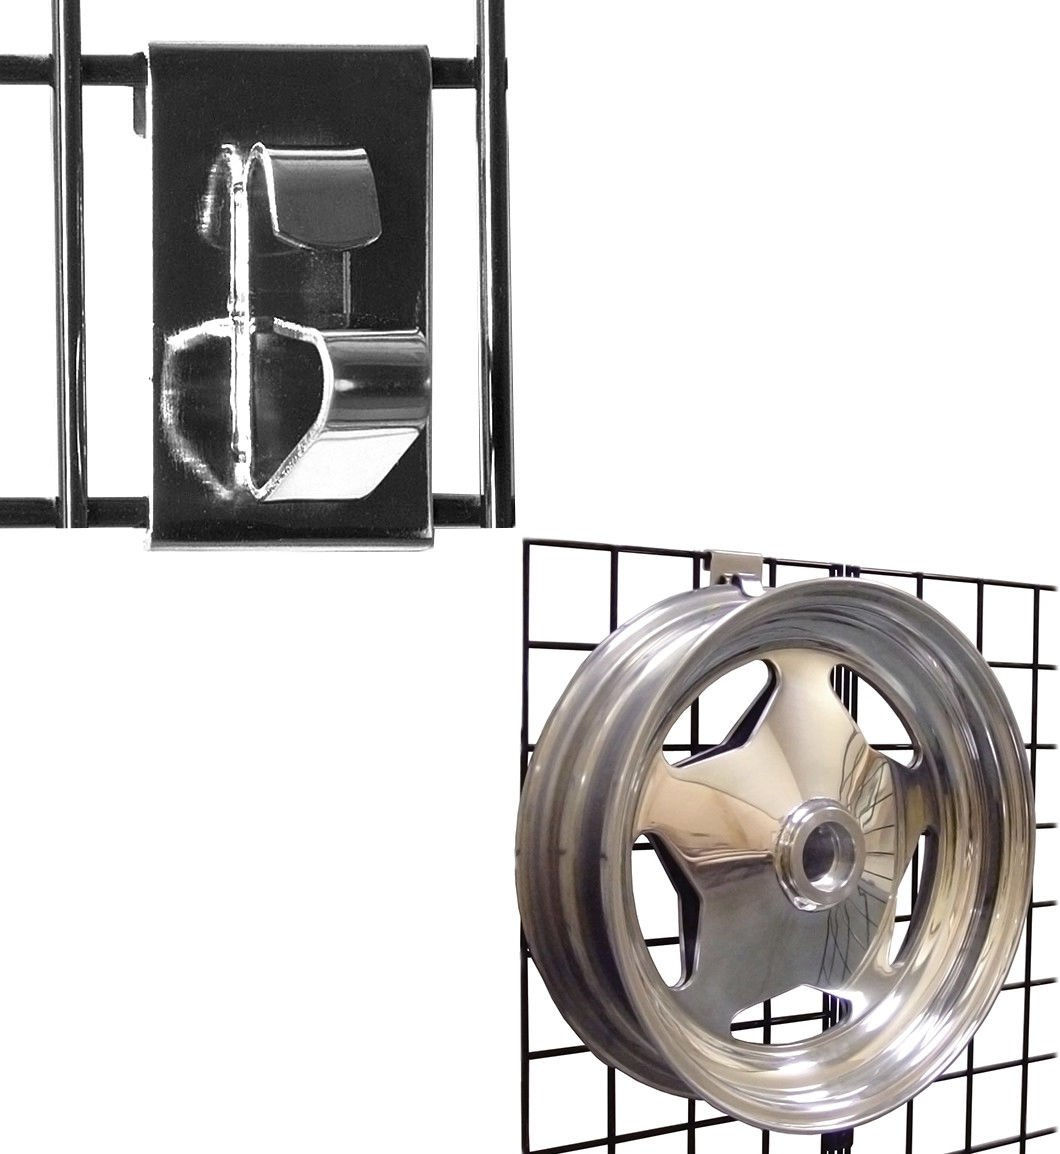 Gridwall Wheel Holder/Grid Wheel & Rim Display Hook for Gridwall Panels - Chrome - 10 Pack